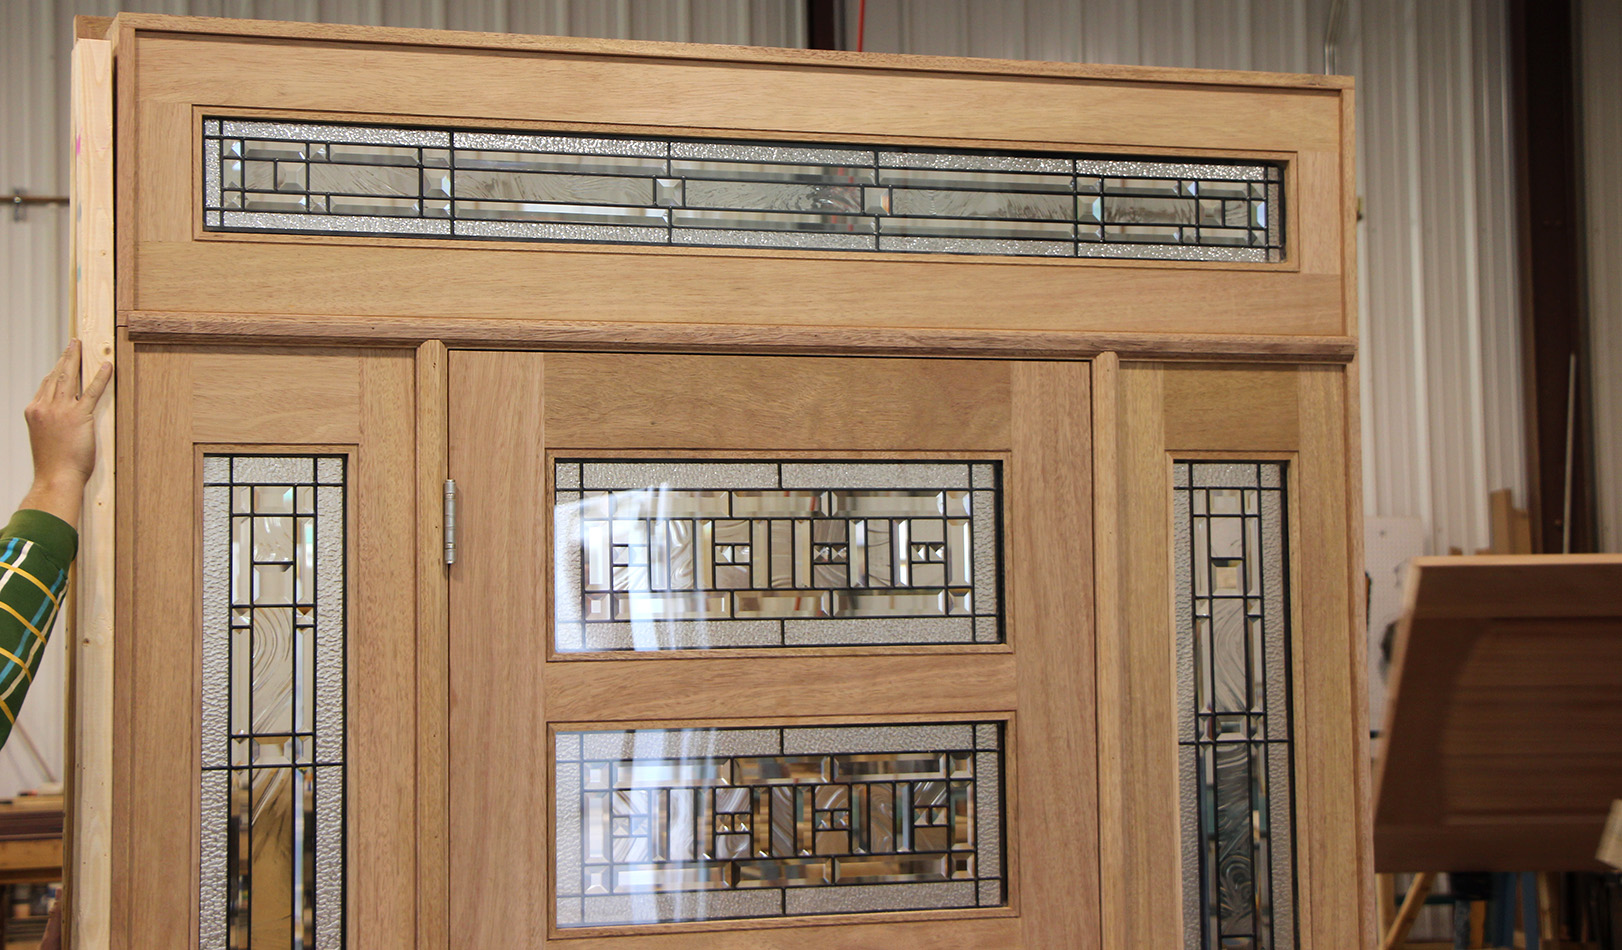 Entry doors with rectangular transoms 6 8 quot prehung -  Exterior Shaker Door And Transom Inside View